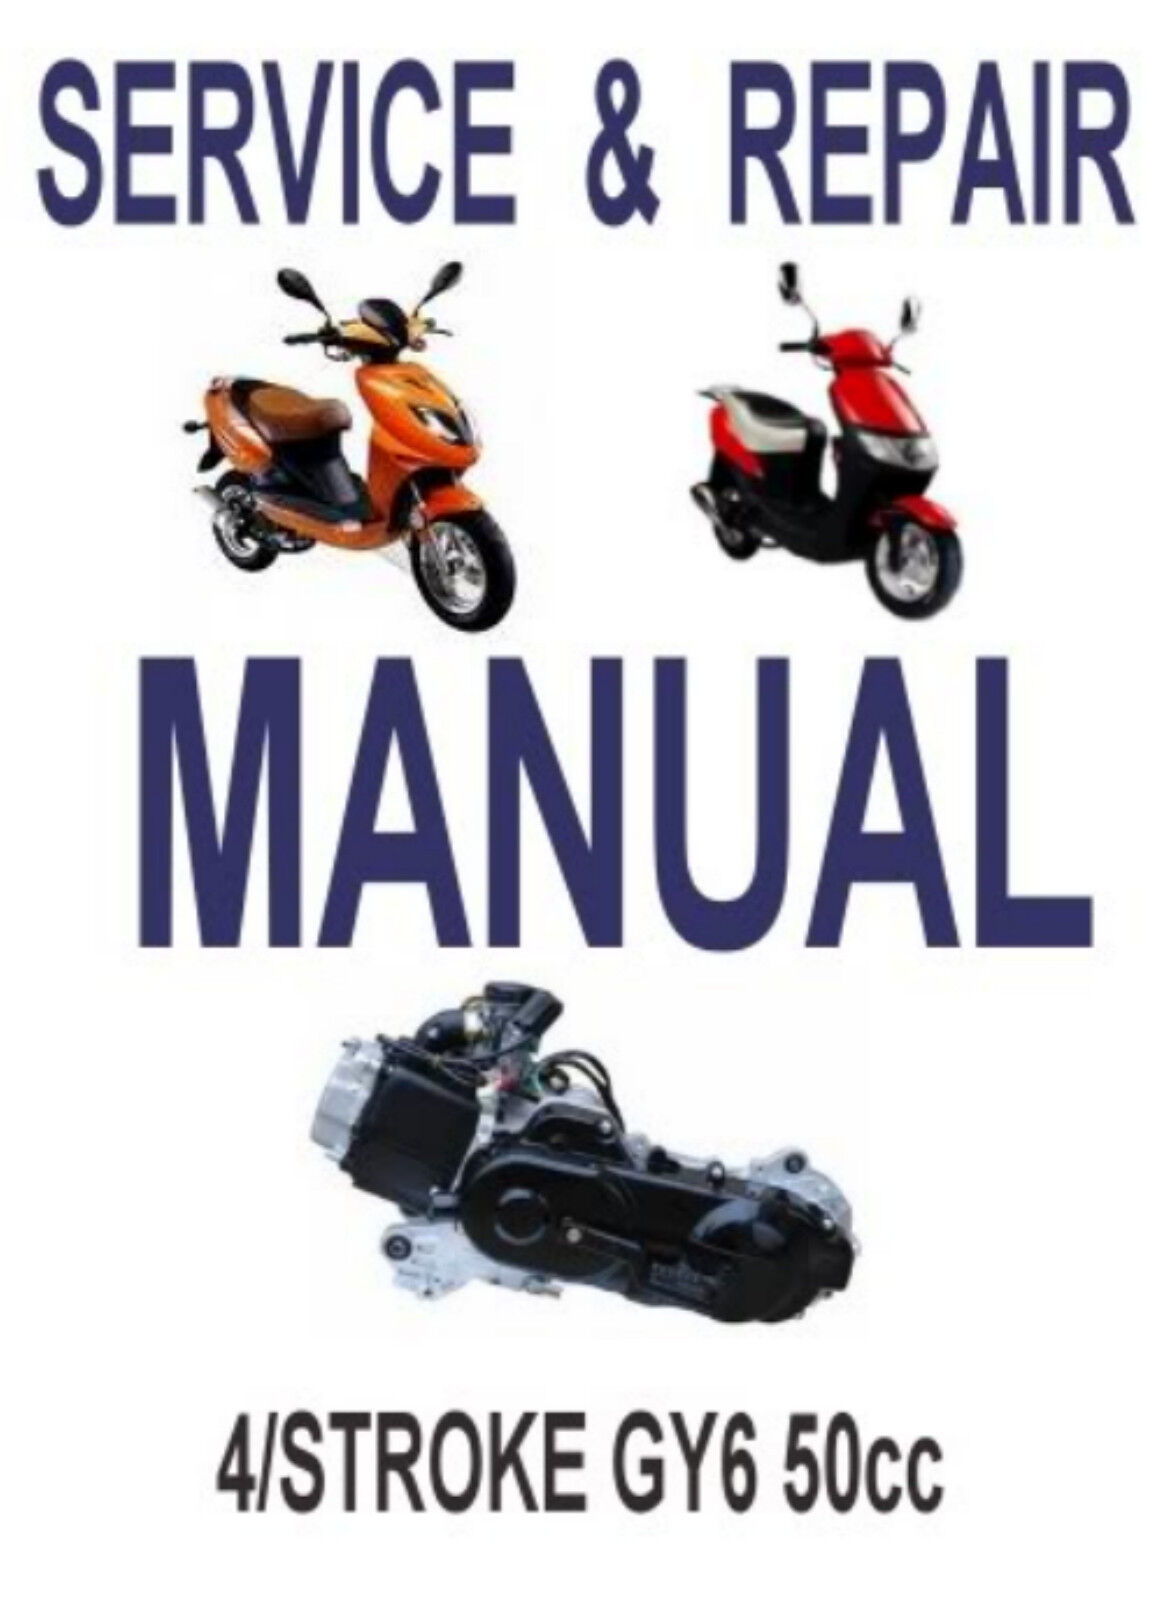 ... Chinese Scooter 50cc GY6 Service Repair Shop Manual on CD Jinlun MADAMI  VIP QMJ 2 of 3 Chinese Scooter 50cc GY6 Service Repair Shop Manual ...